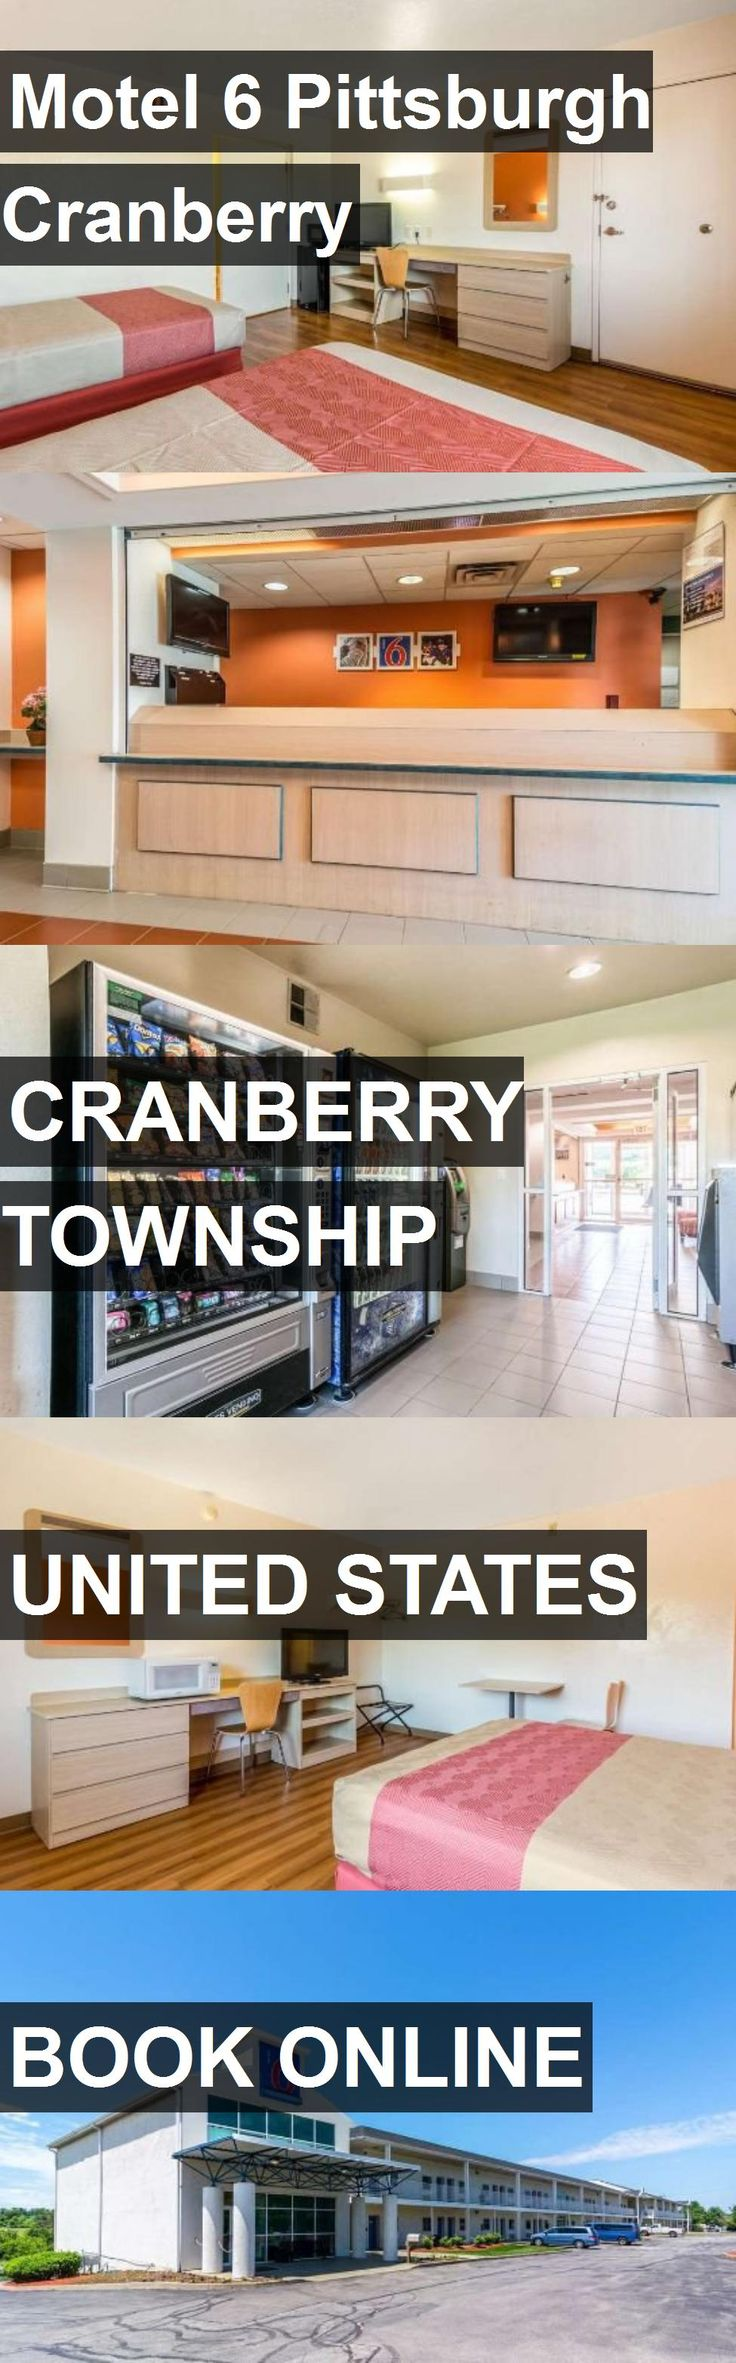 Hotel Motel 6 Pittsburgh Cranberry in Cranberry Township, United States. For more information, photos, reviews and best prices please follow the link. #UnitedStates #CranberryTownship #travel #vacation #hotel